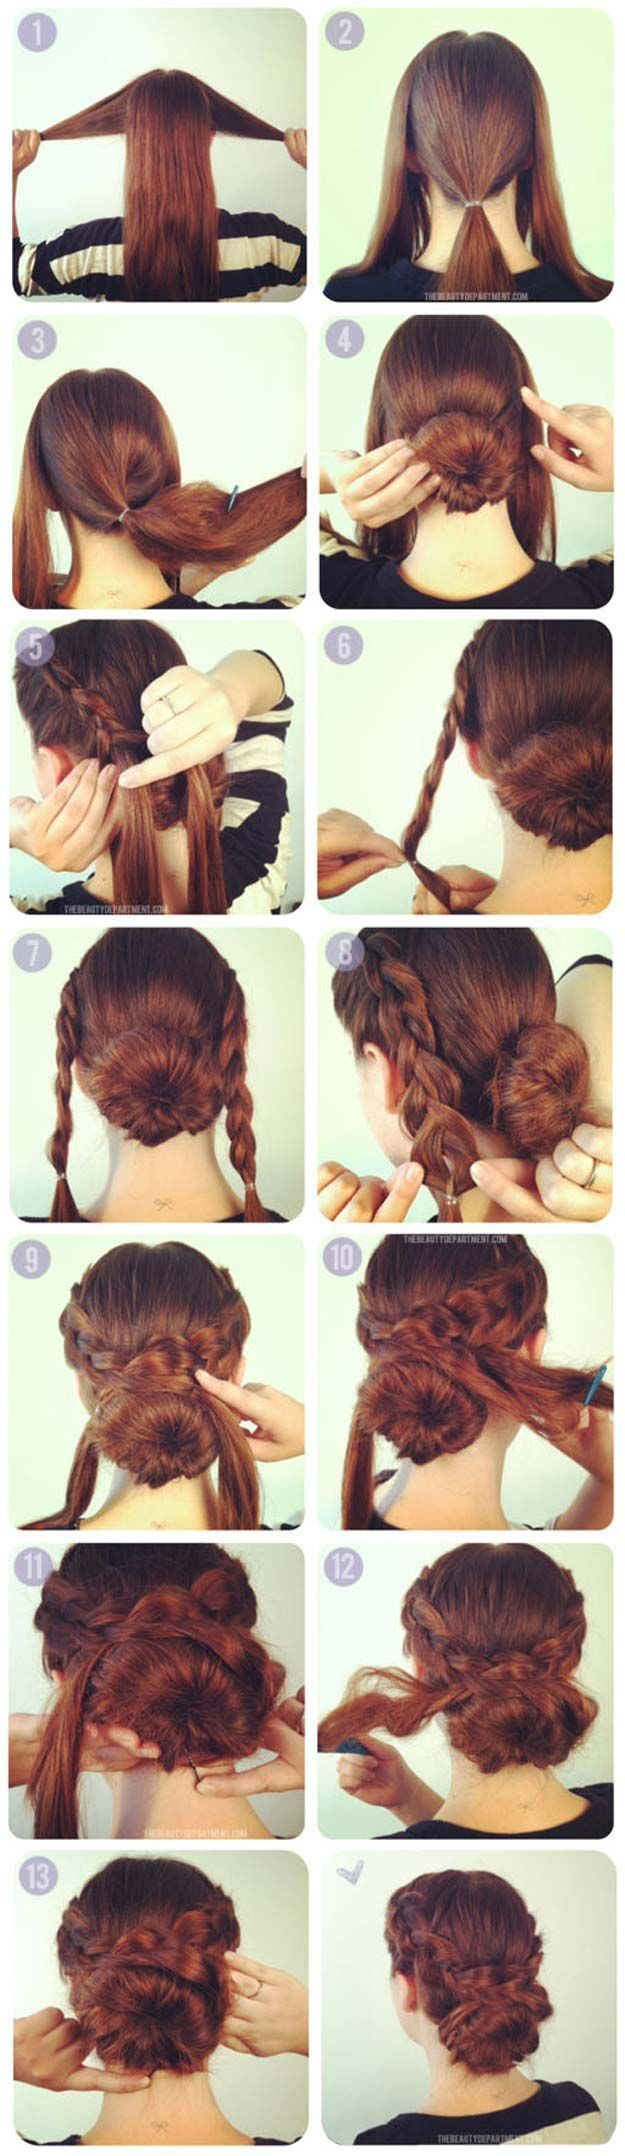 Best Hairstyles for Long Hair – Hot Crossed Bun – Step by Step Tutorials for Eas…